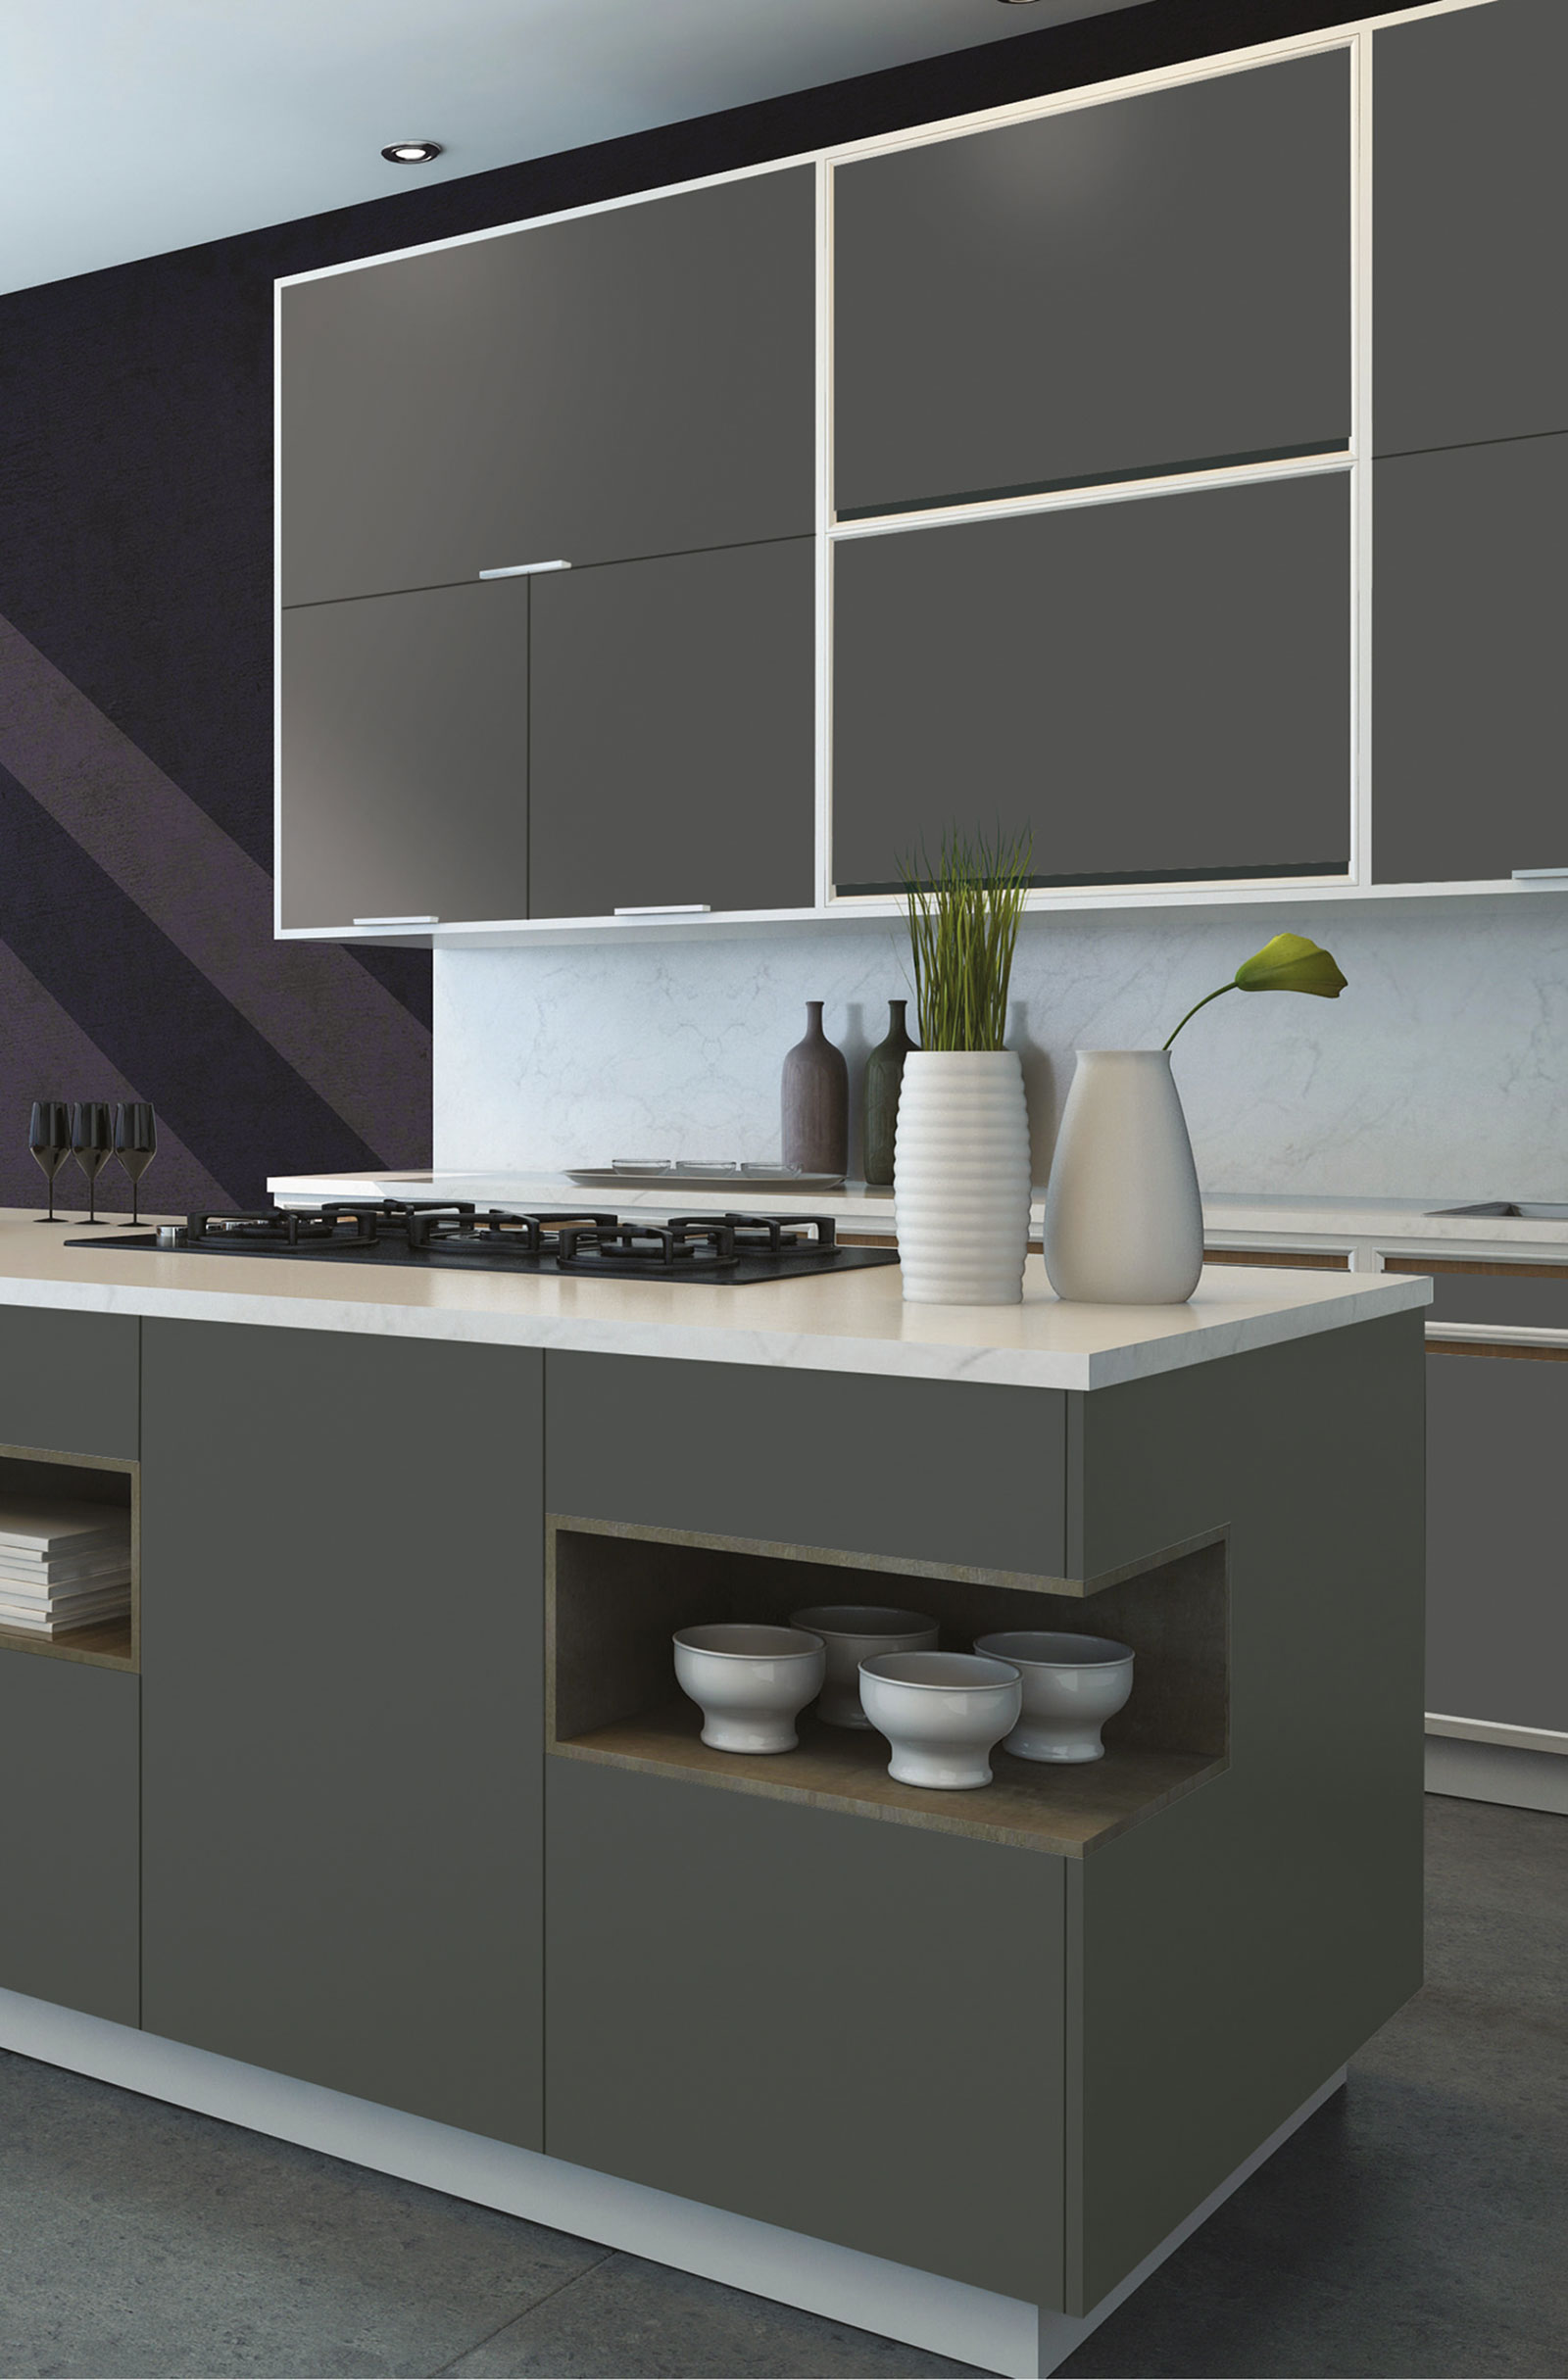 Kitchens Sonae Arauco